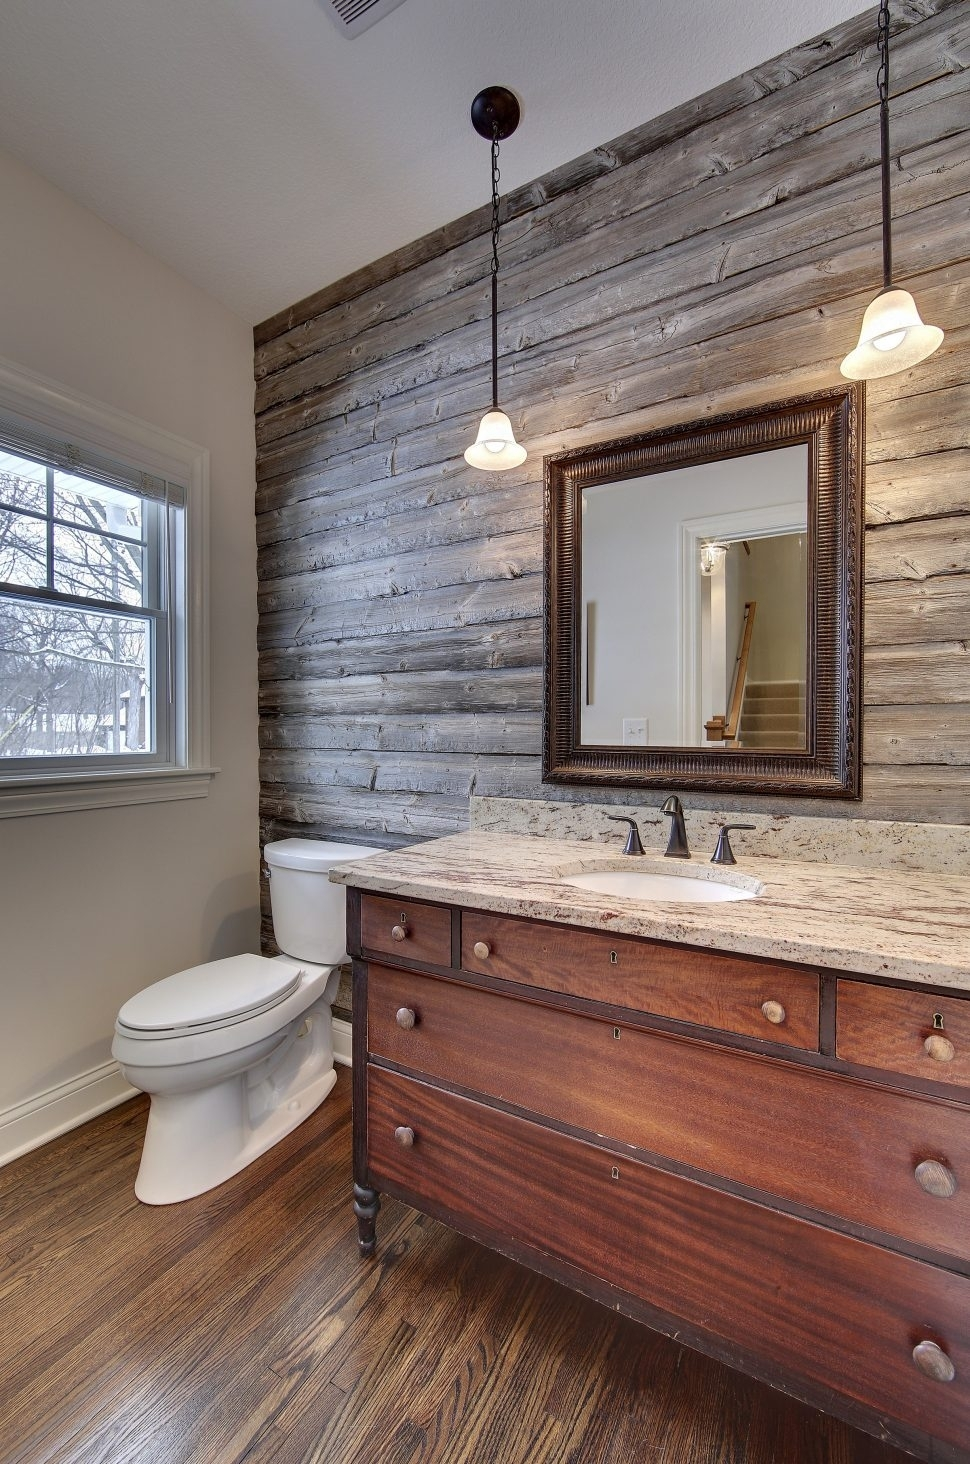 Interior Design : Powder Room With Barn Wood Accent Wall Vanity Within Most Current Antique Wall Accents (View 7 of 15)